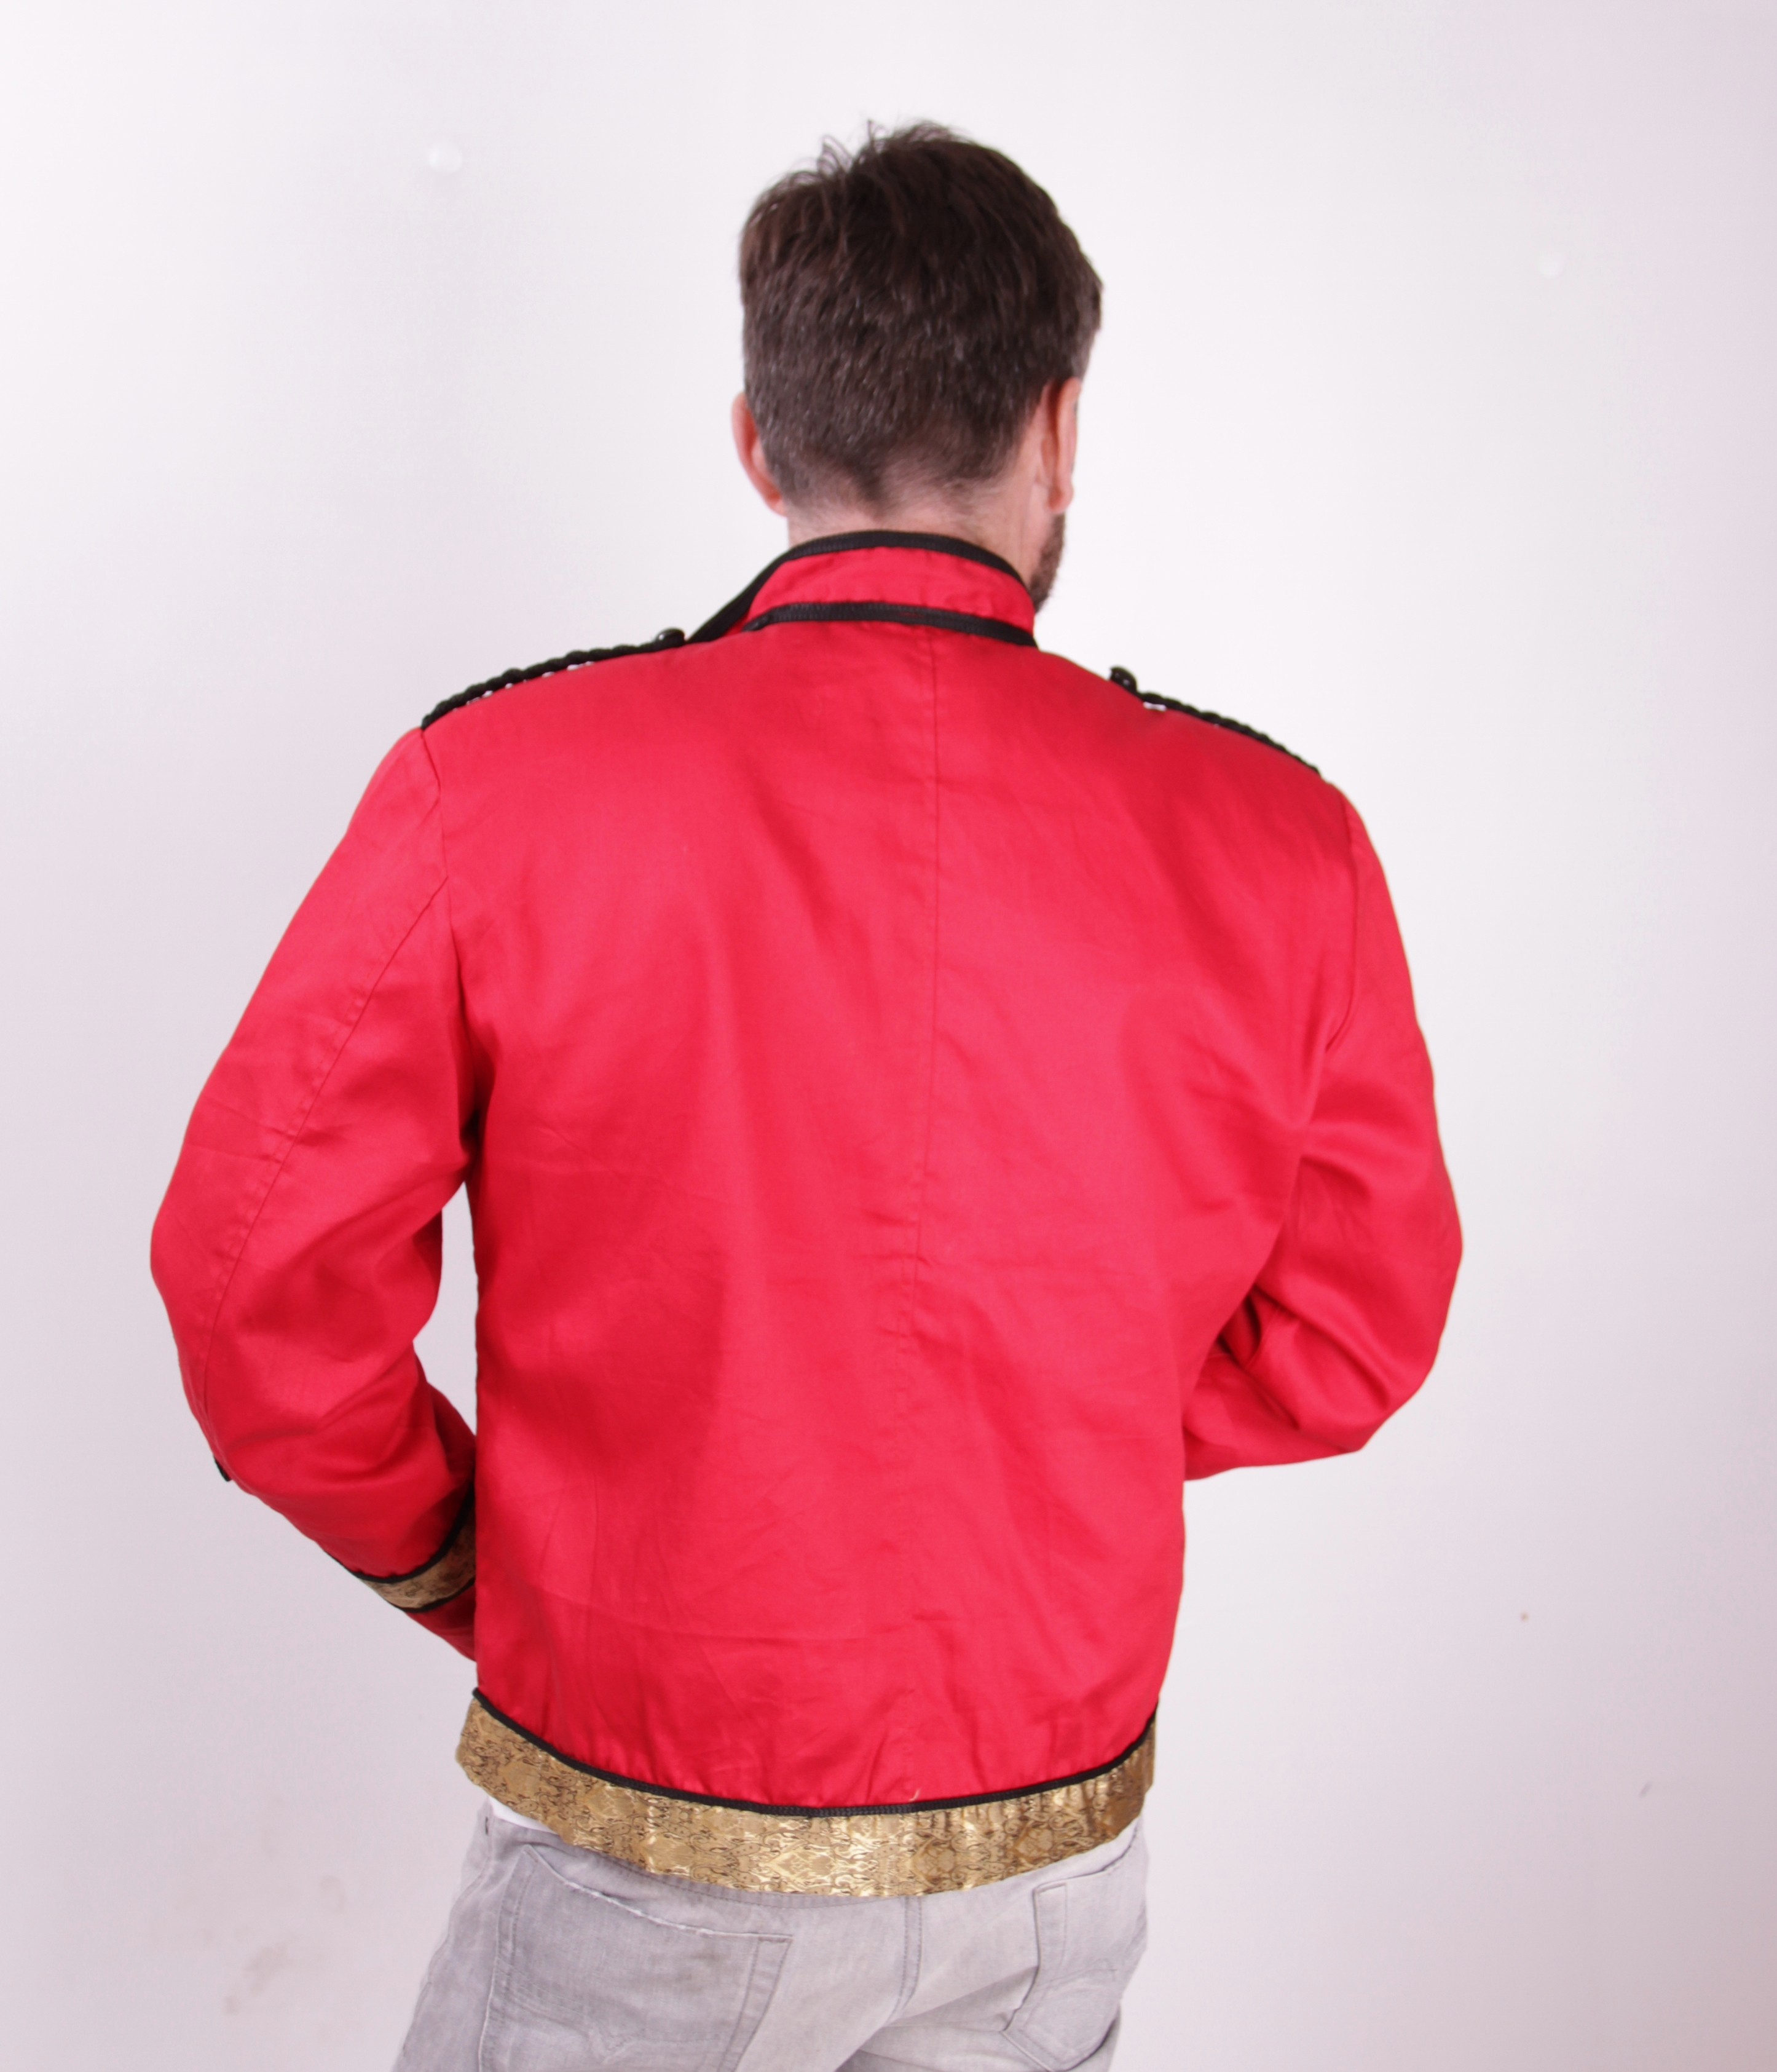 hedj_military_style_jacket_lady_ks_red_jackets_and_outerwear_3.JPG